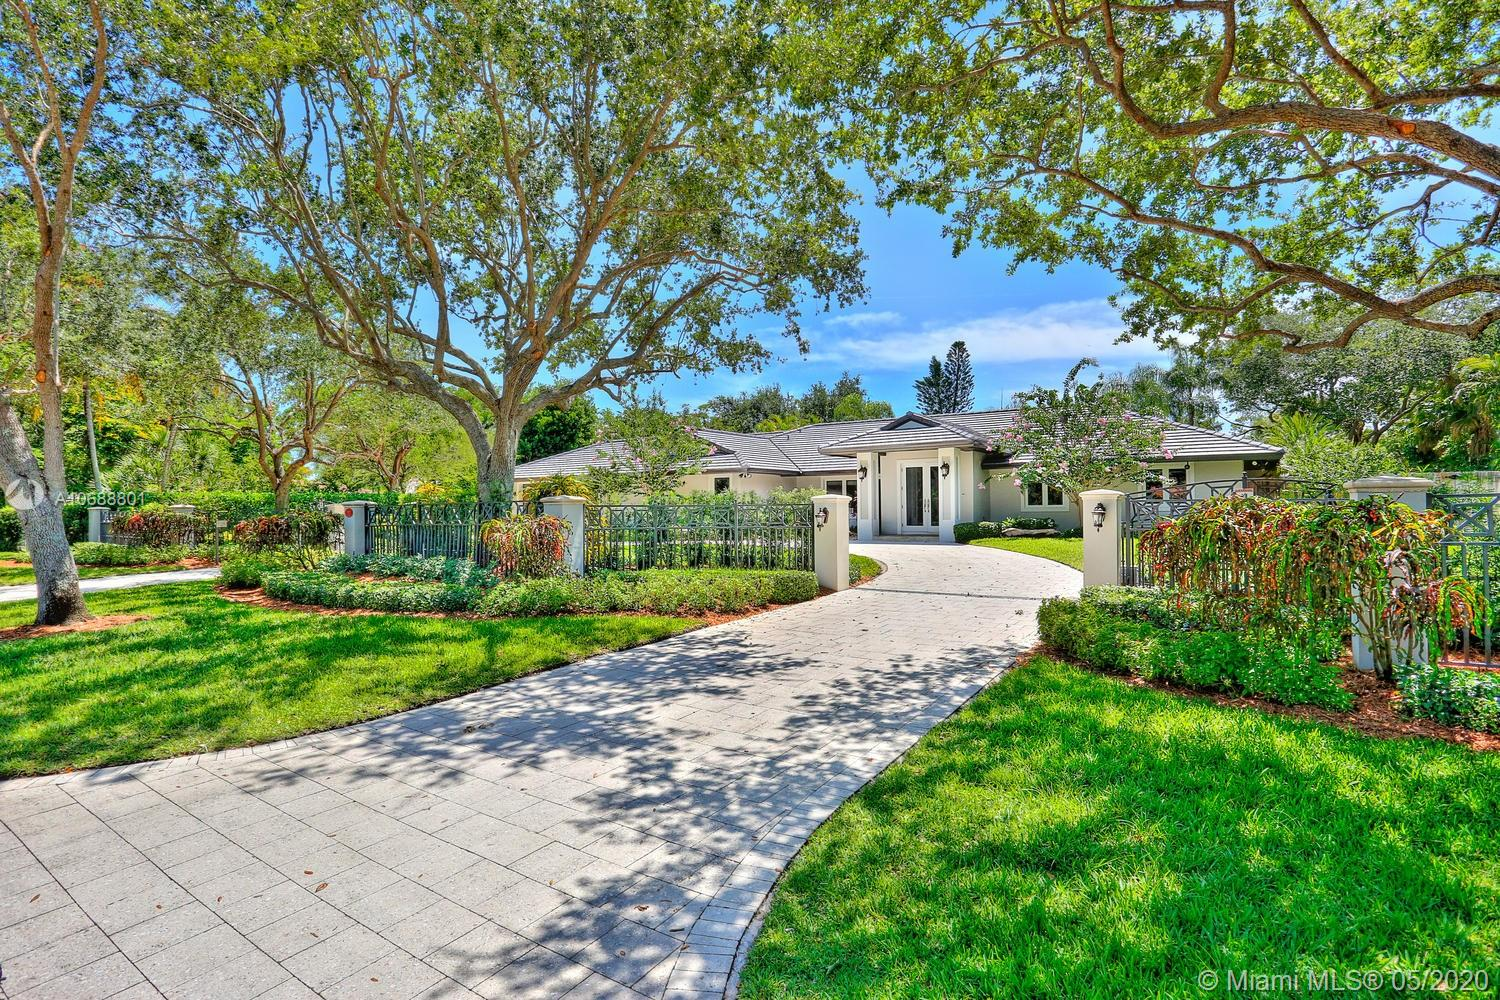 13471 SW 62nd Ave, Pinecrest, FL 33156